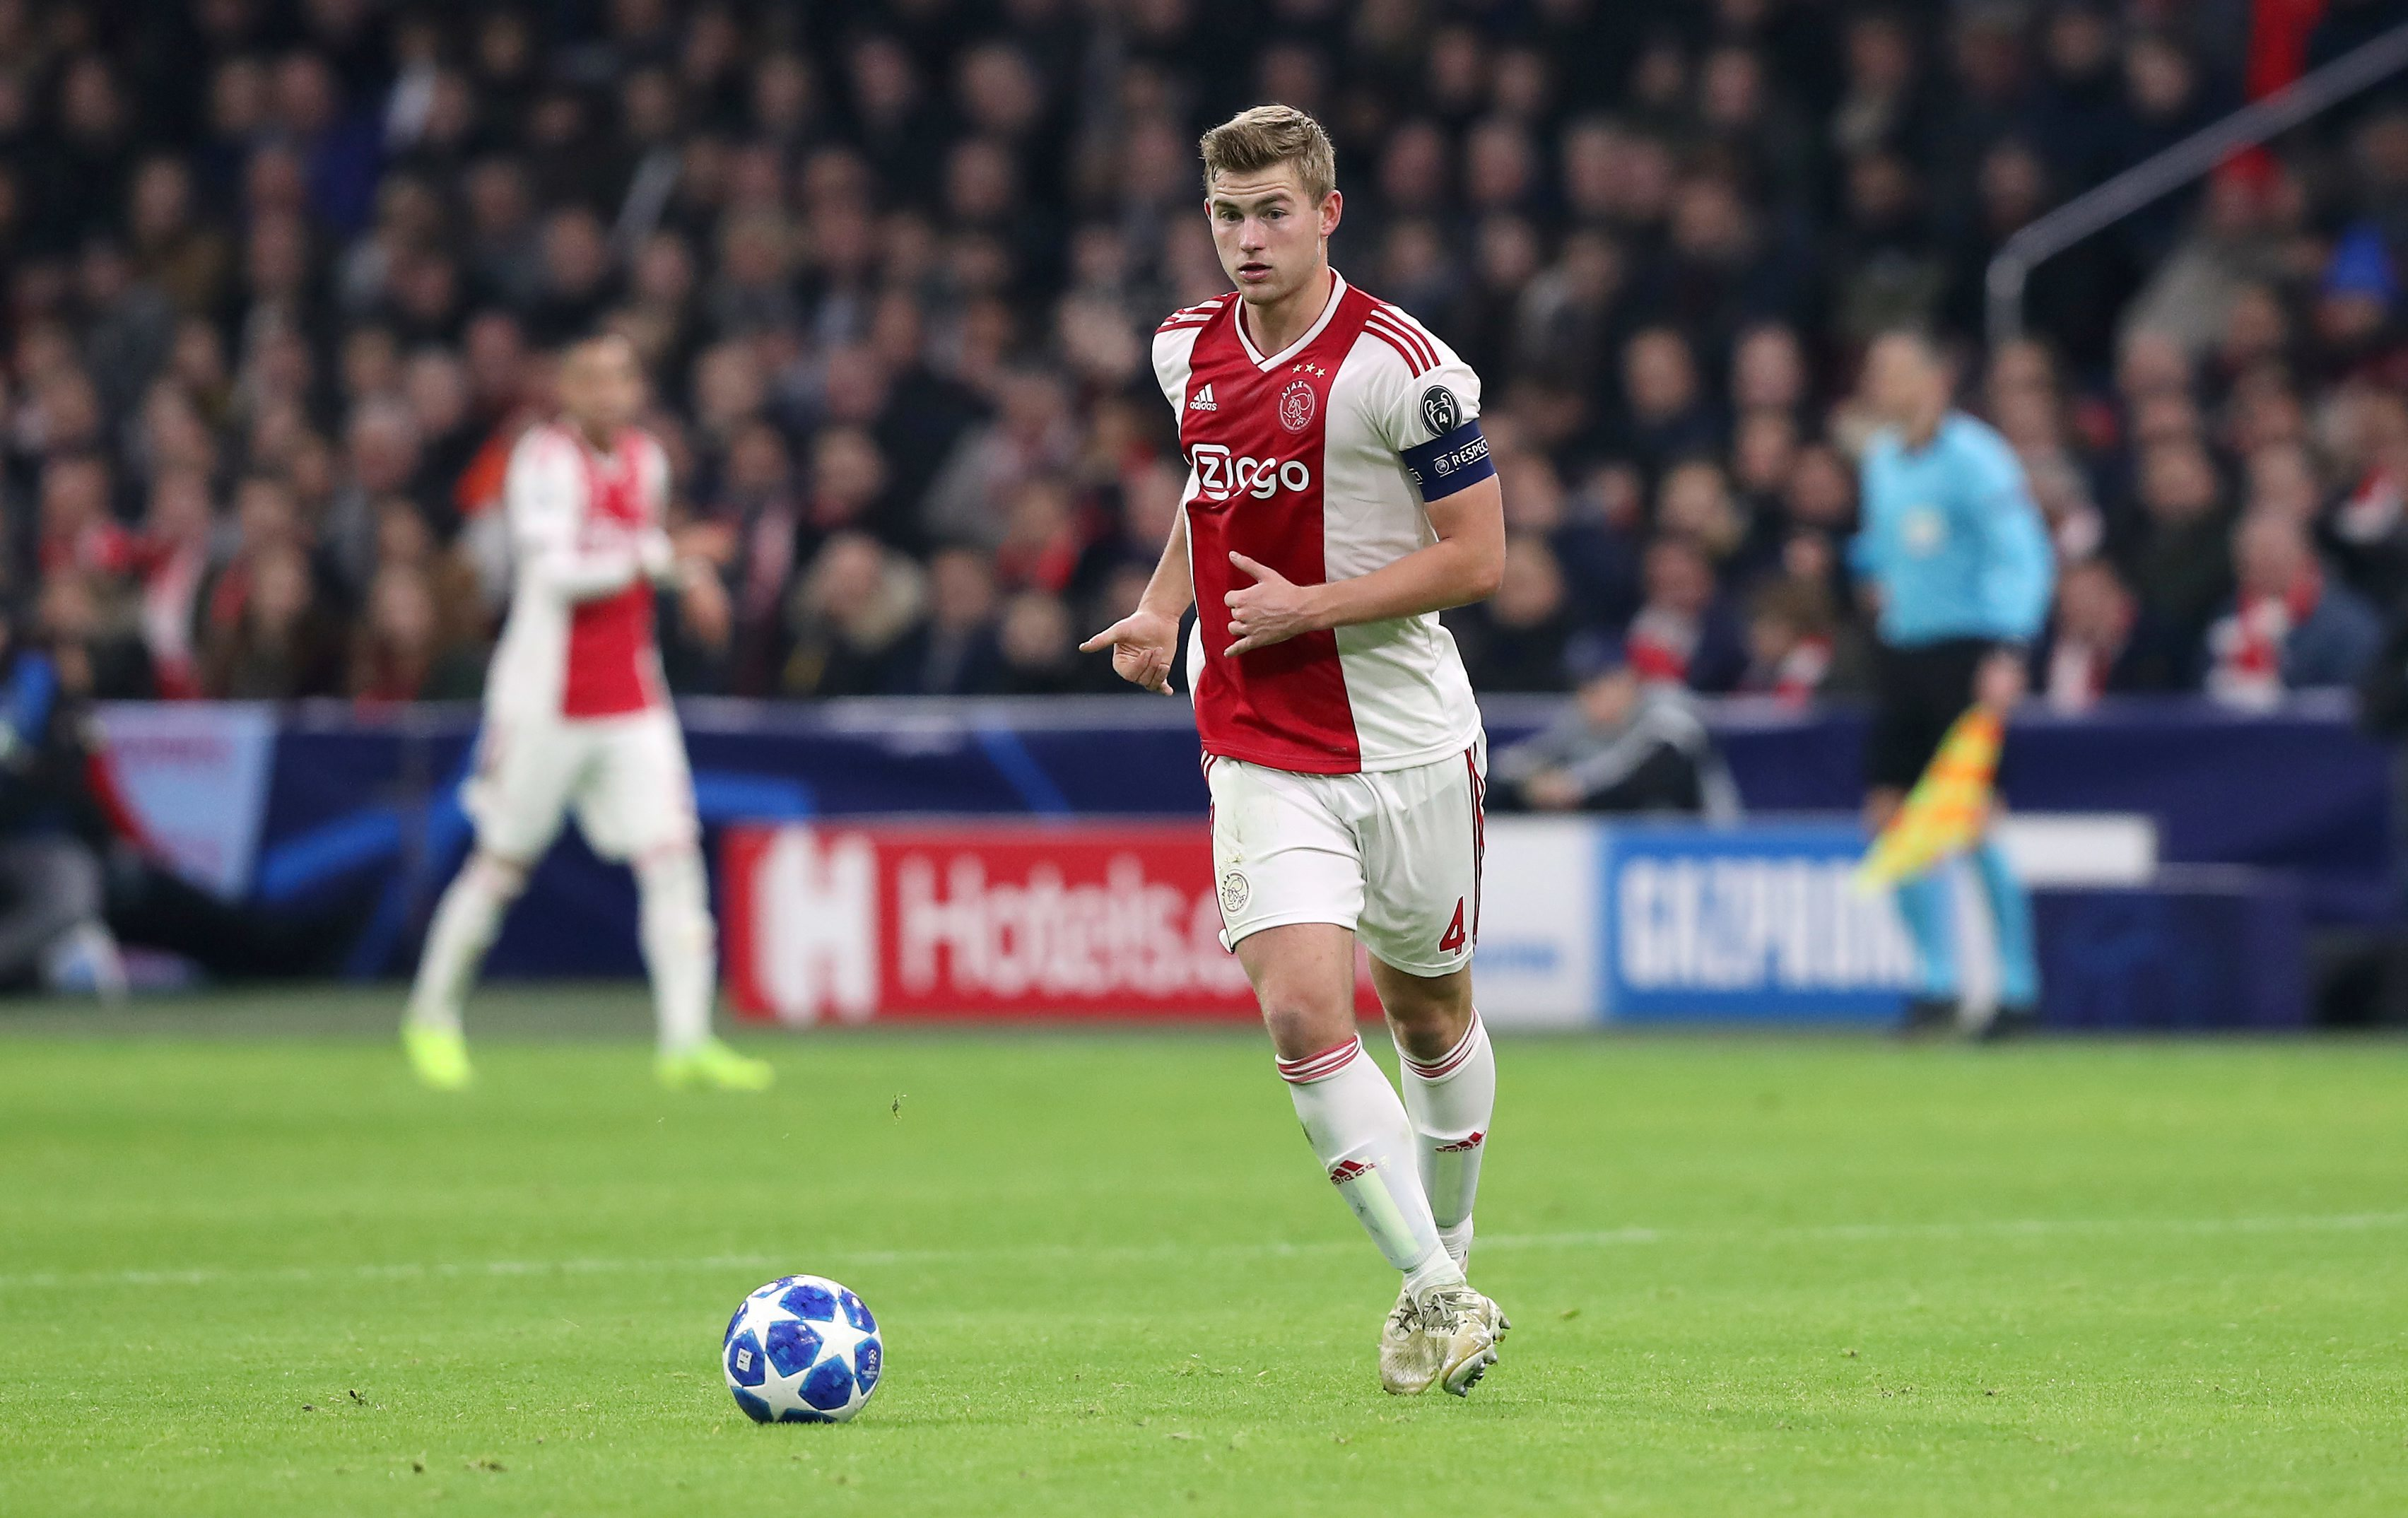 Transfer: De Ligt's £70million transfer to be announced Monday